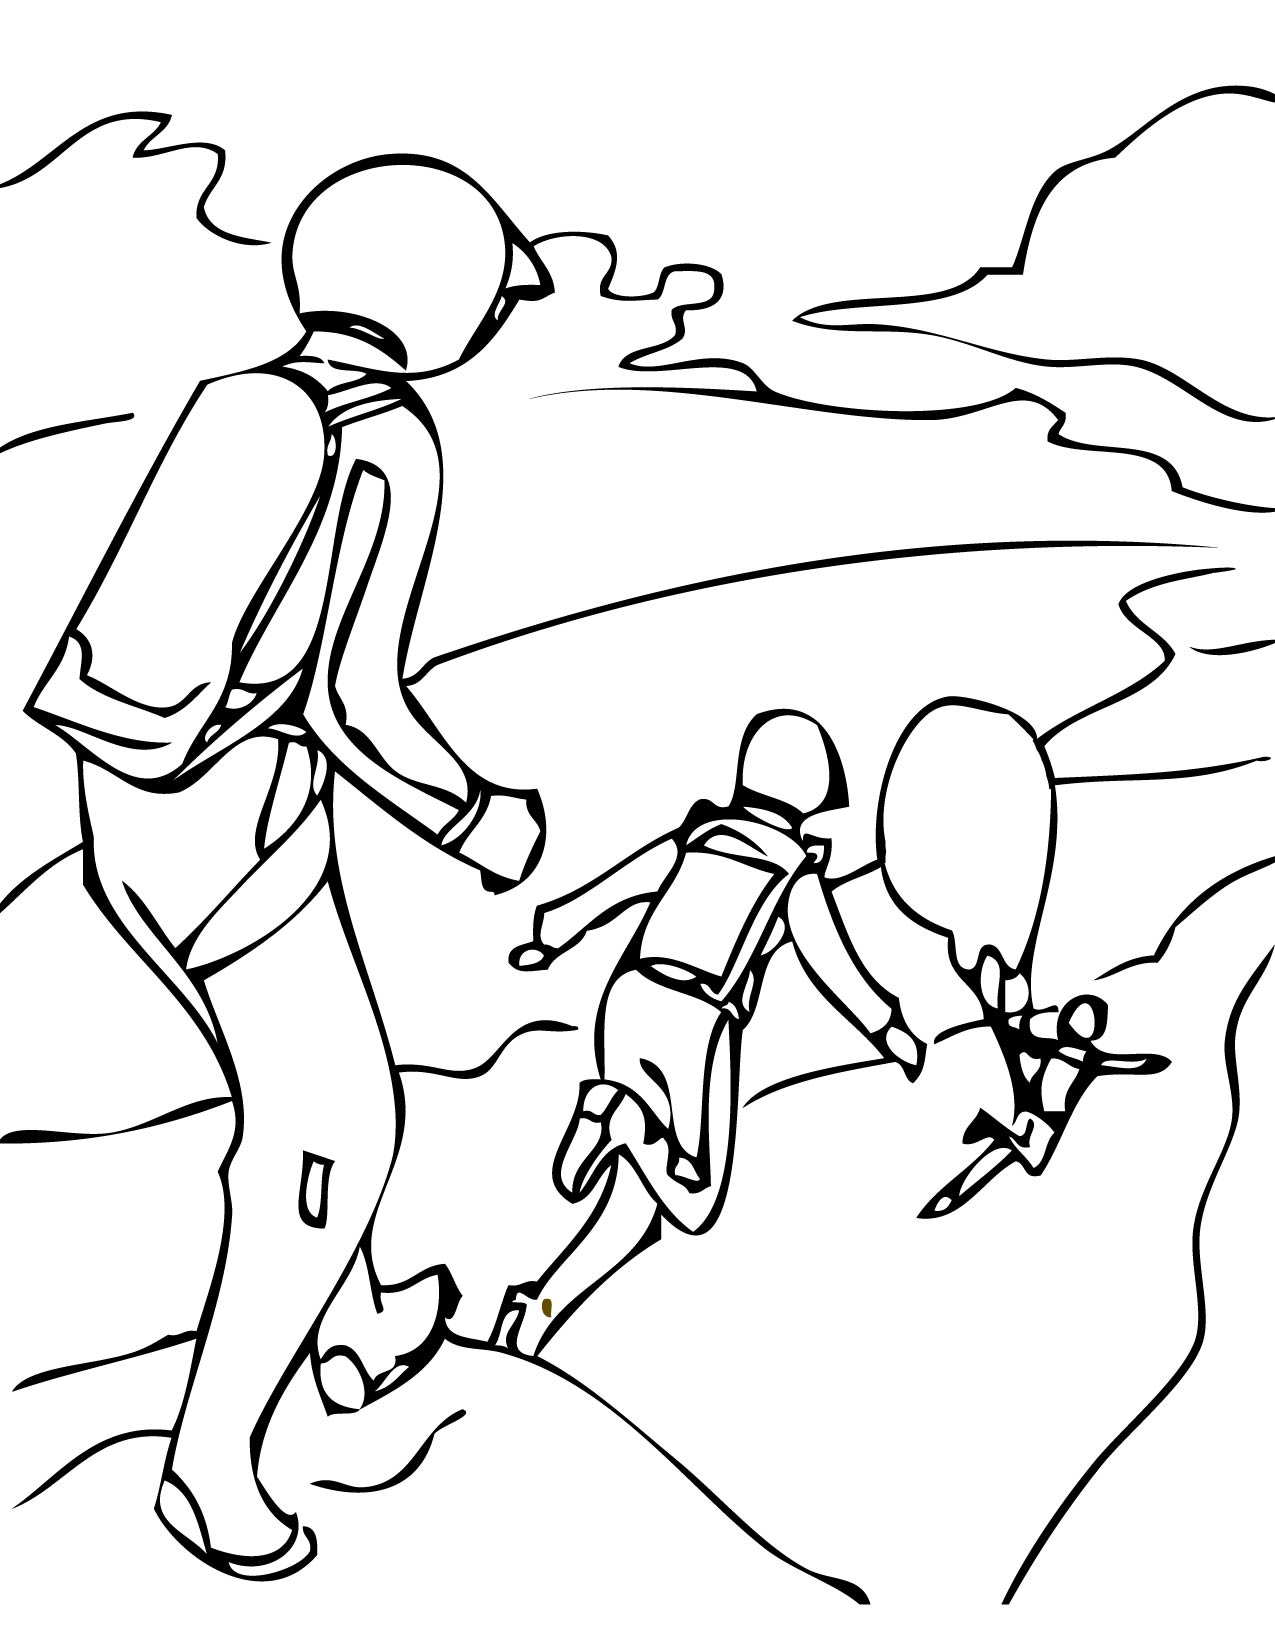 xtreme sports coloring pages handipoints